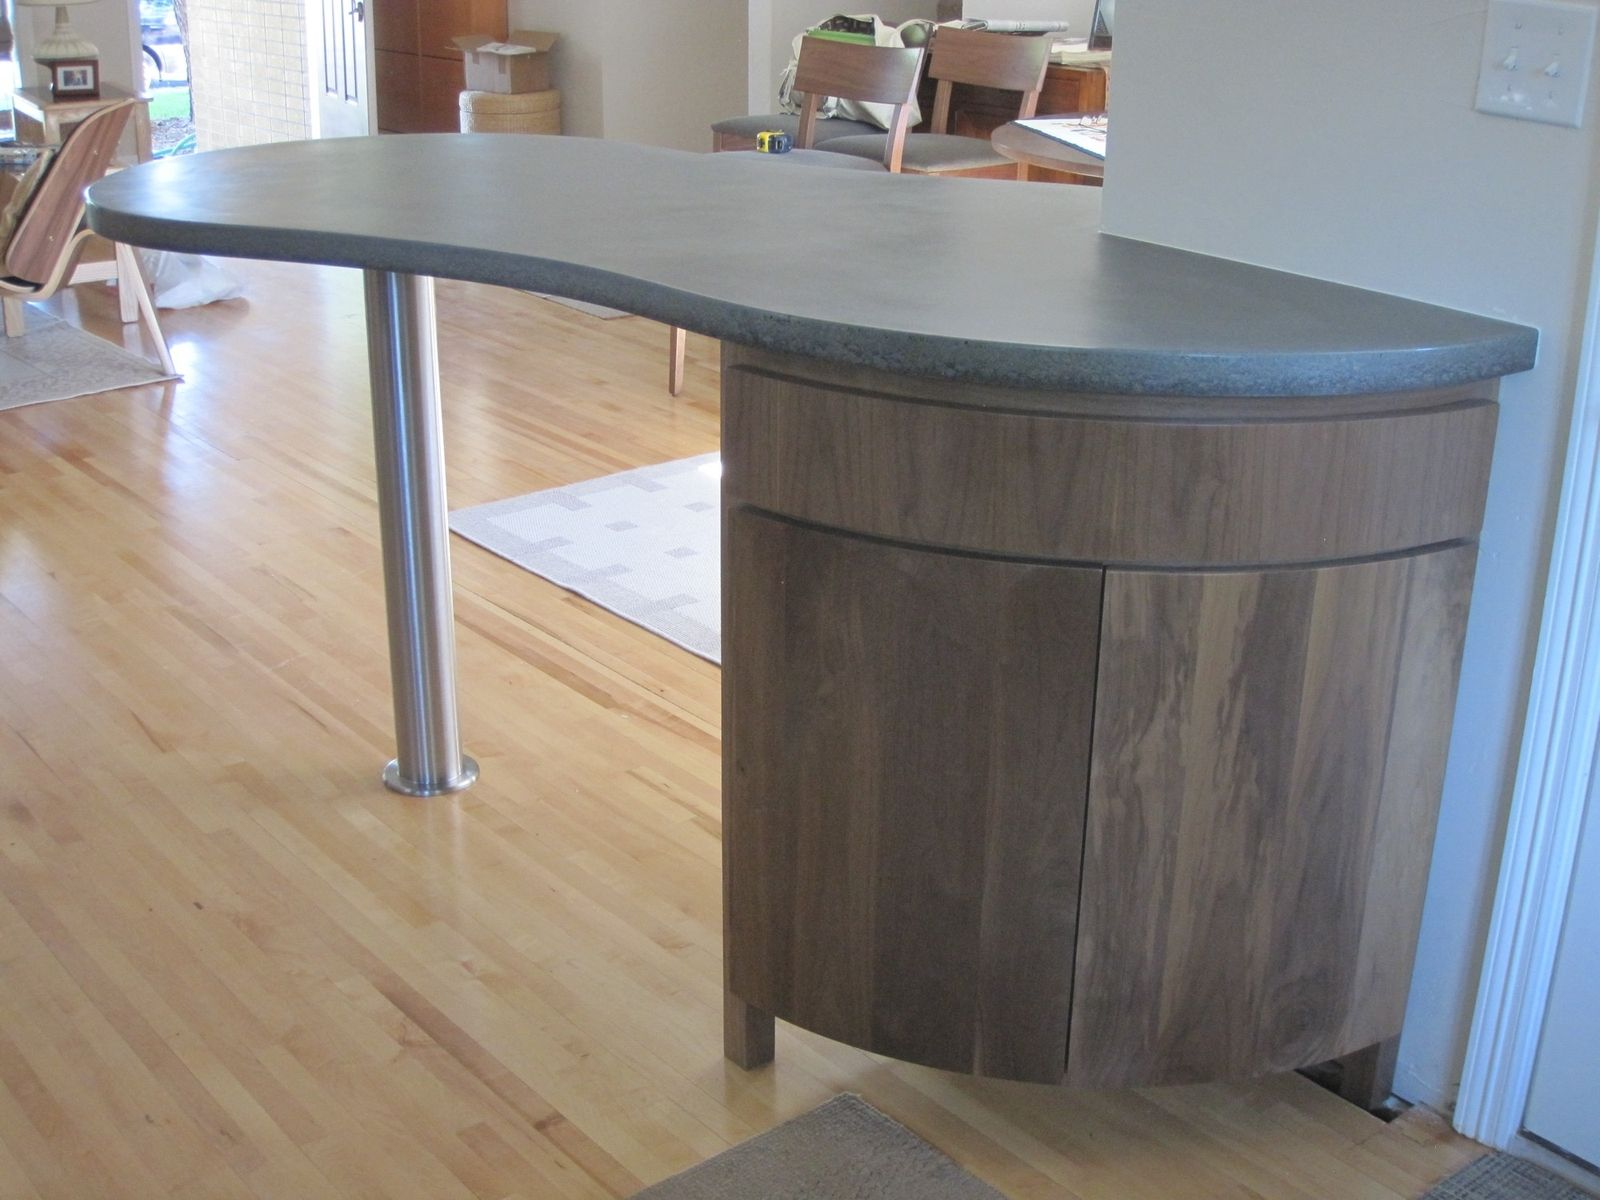 Hand crafted curved kitchen island cabinet by mcguire - Custom made cabinet ...